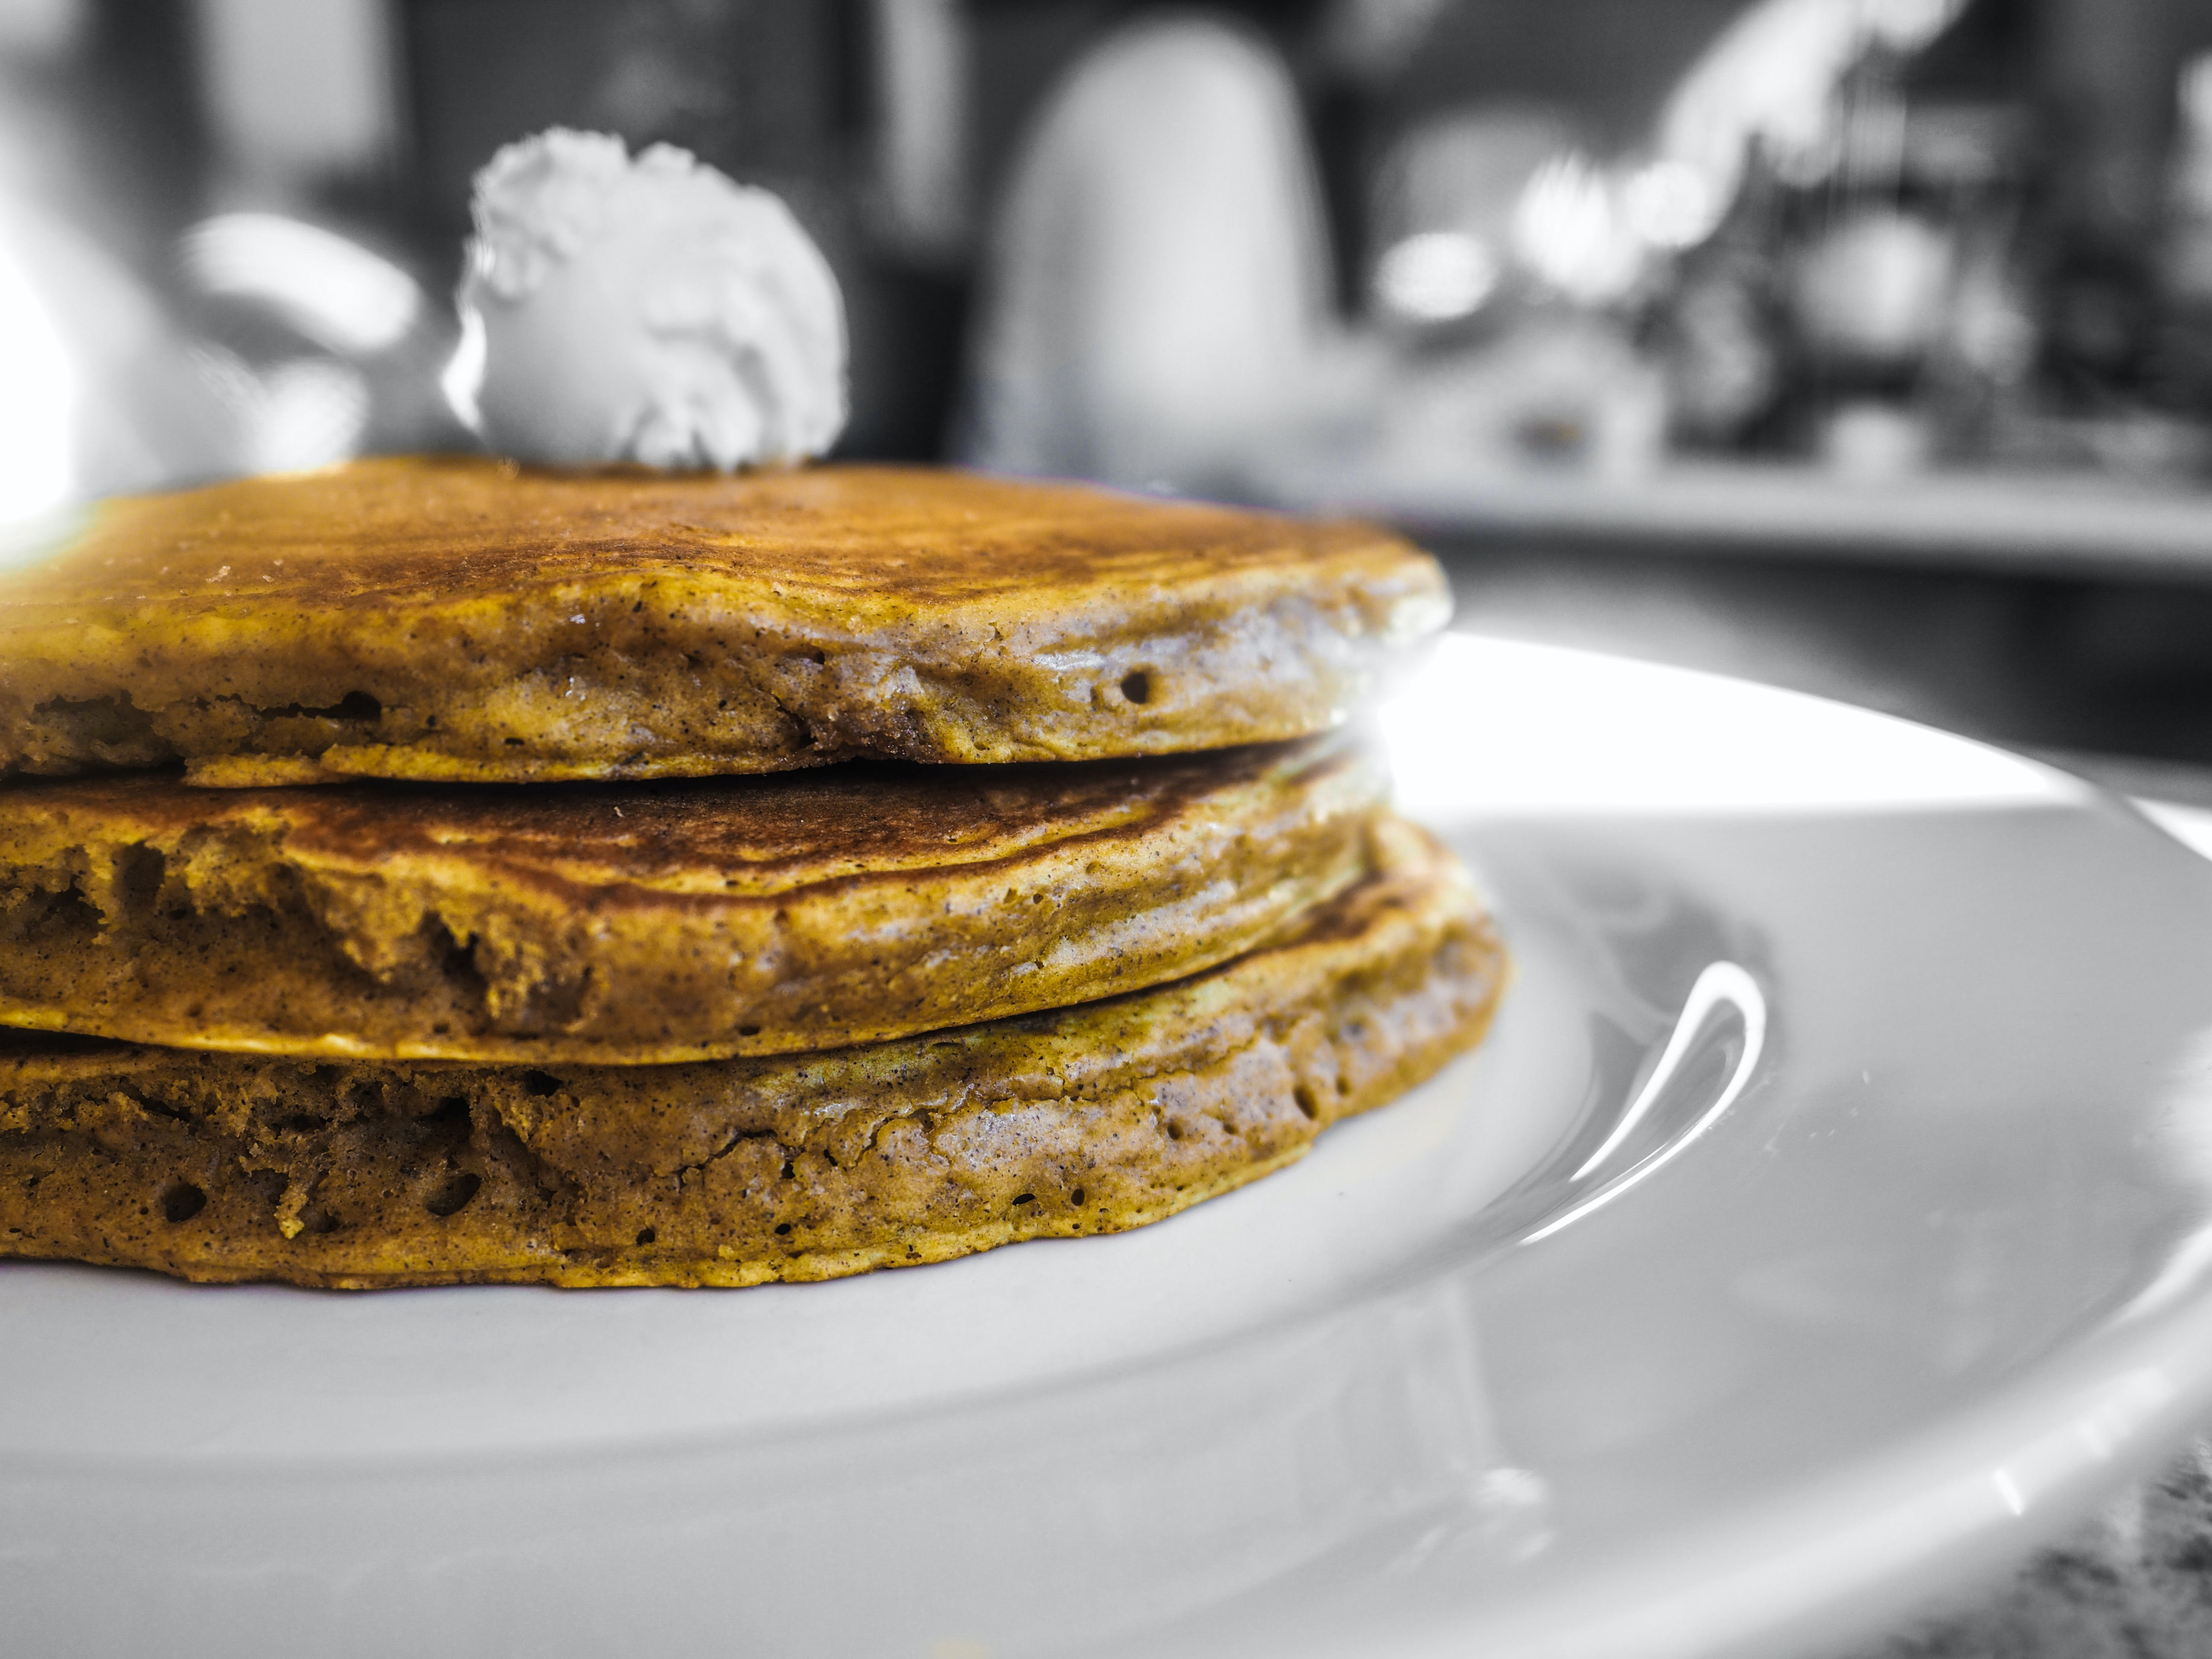 Free stock photo of food photography, pancakes